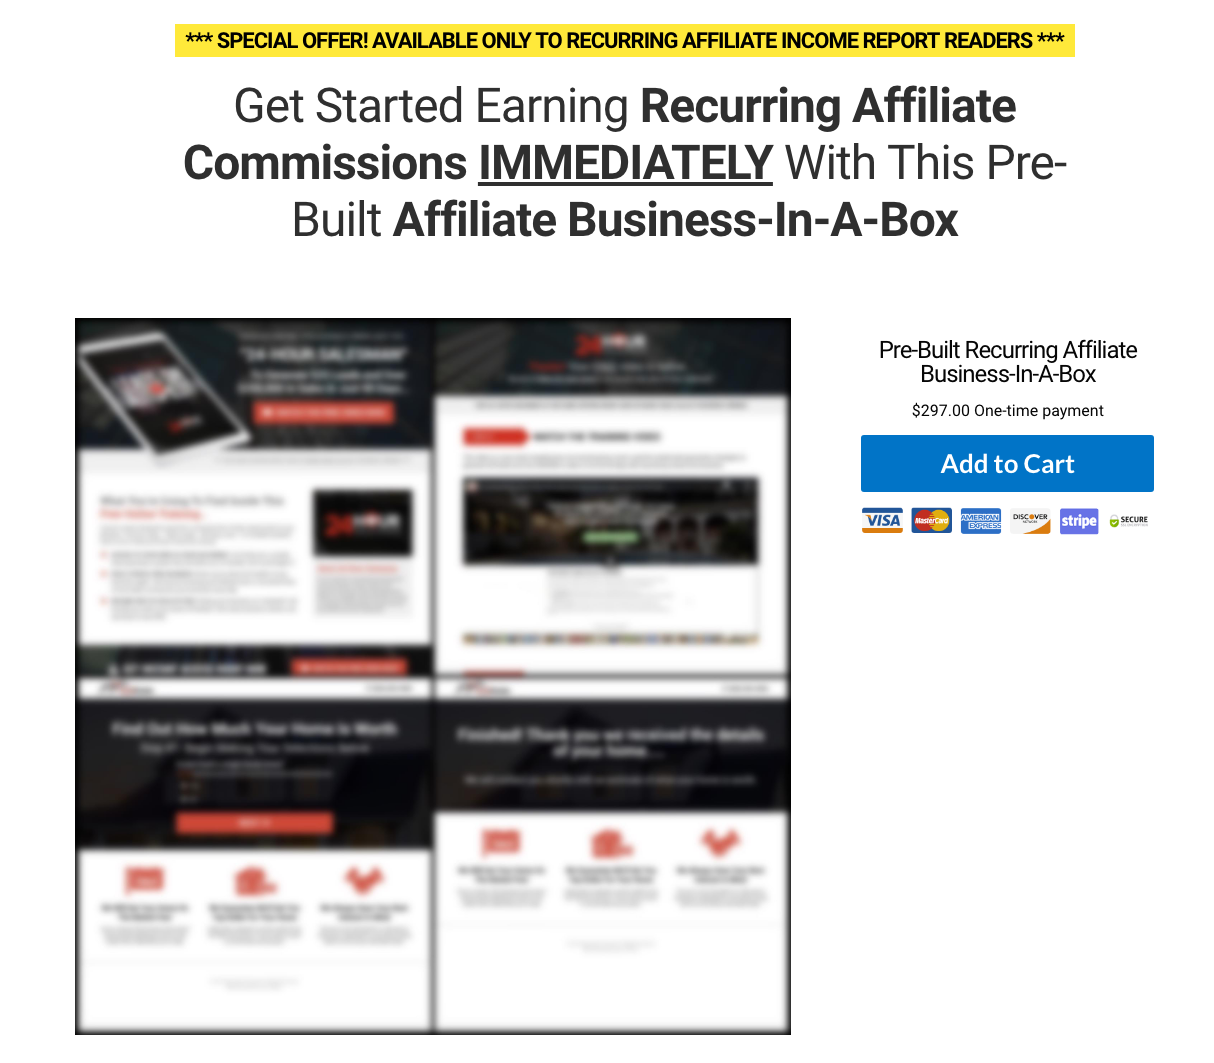 Duston McGroarty - Affiliate Business in a Box